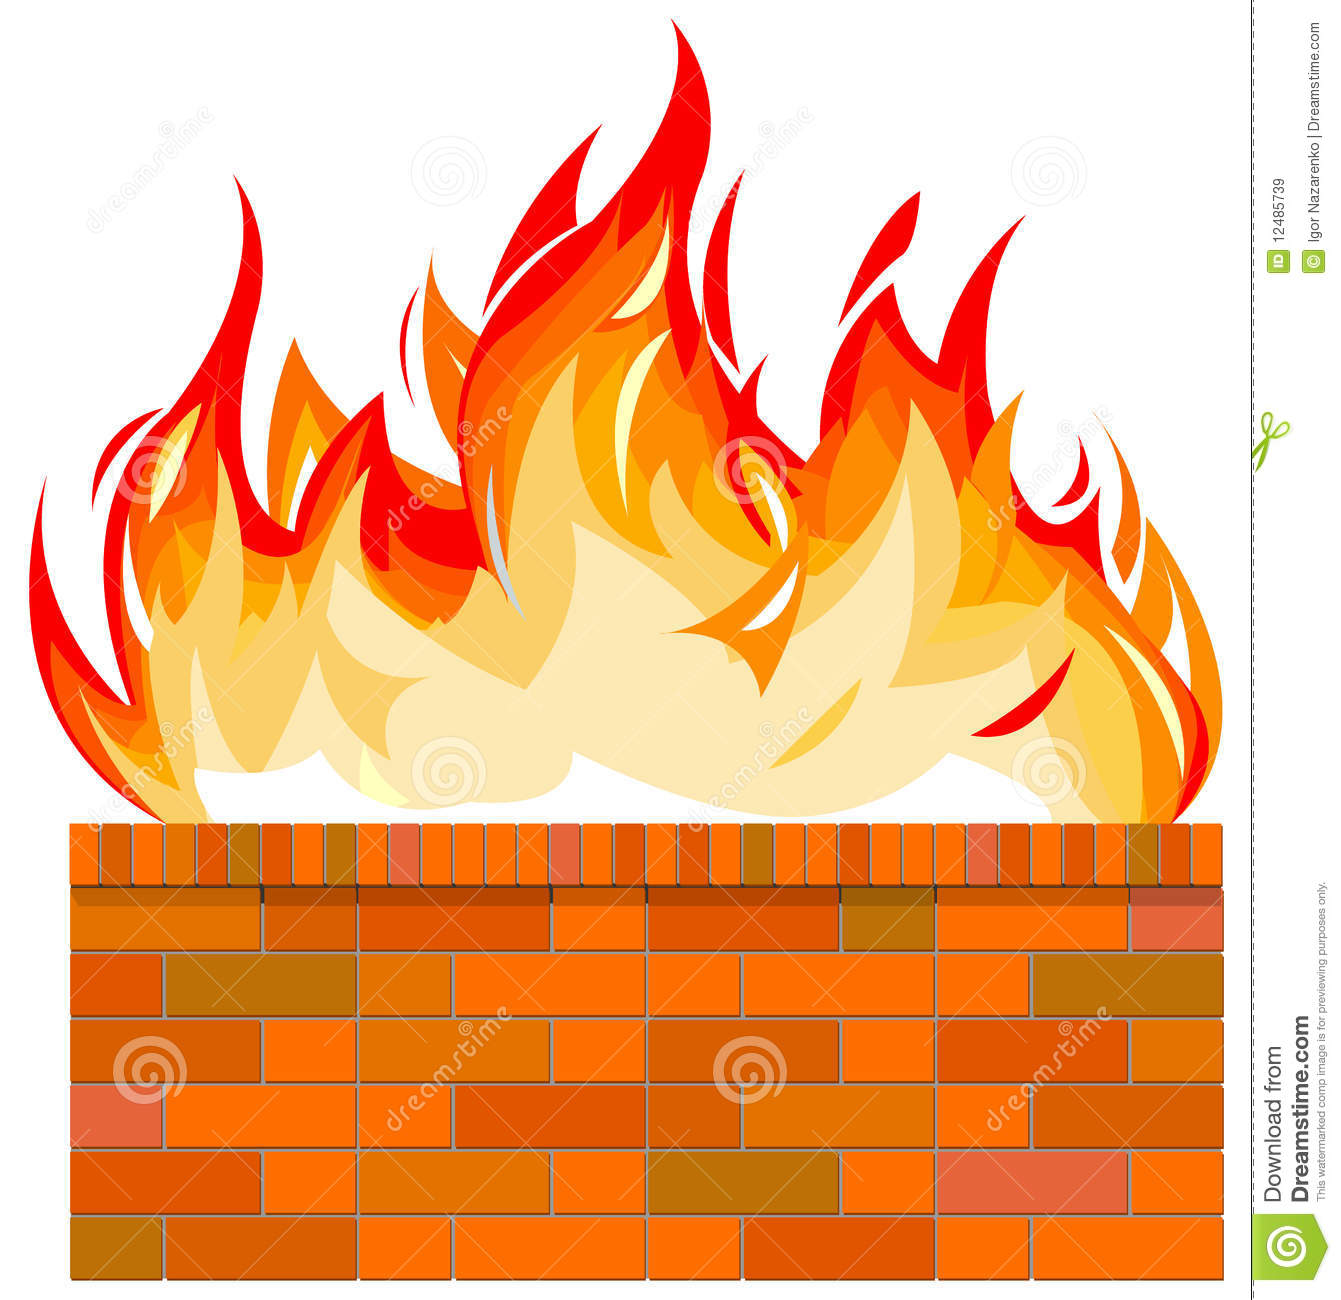 Brick wall on fire stock vector. Illustration of yellow - 12485739